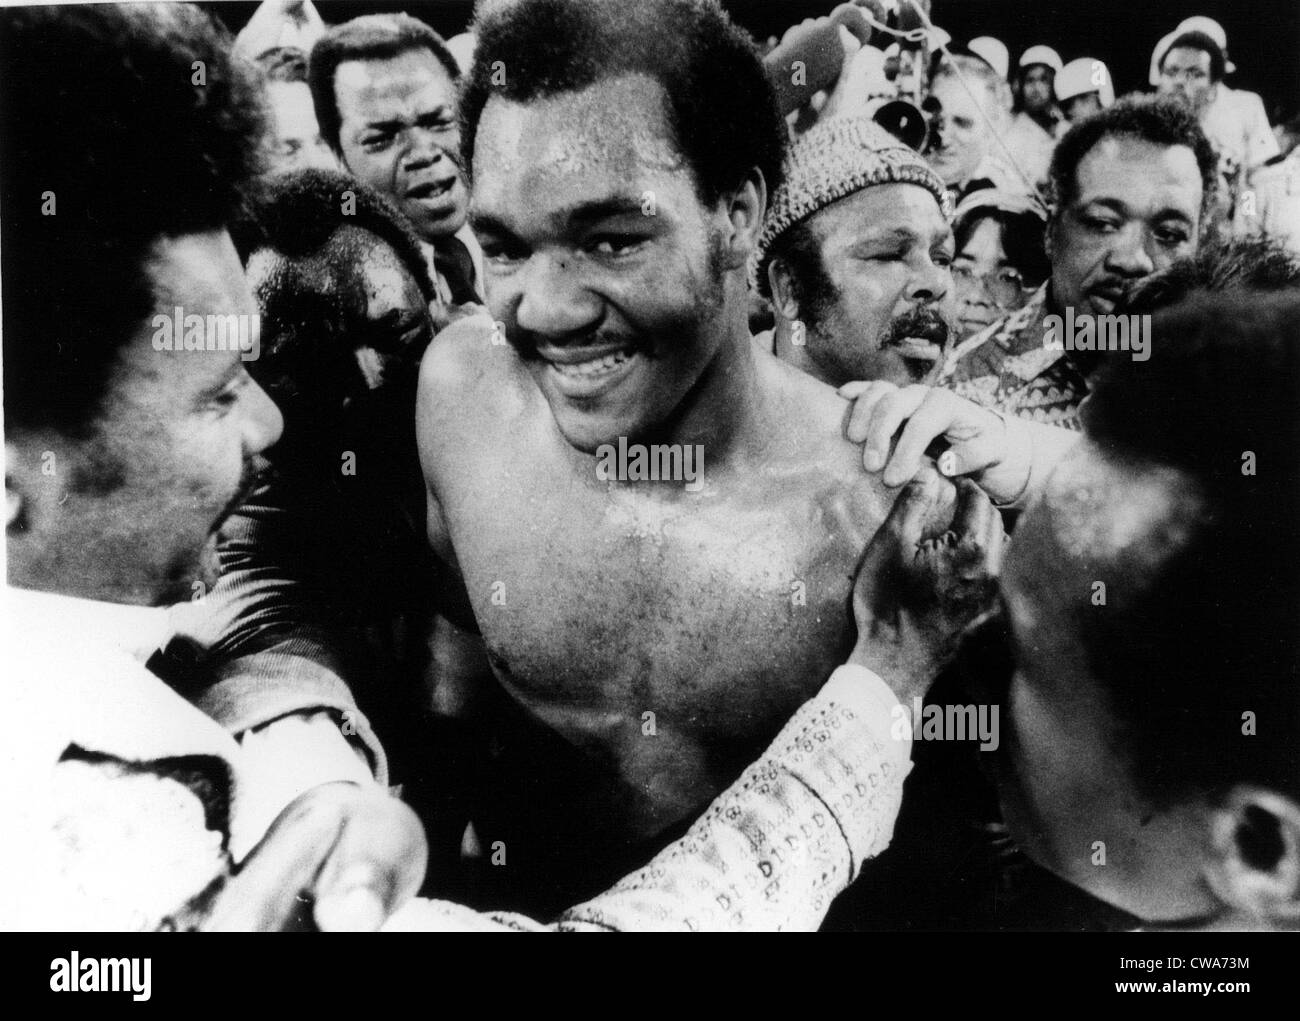 GEORGE FOREMAN- The boxer is congratulated in the ring after defeating Joe Frazier for the world heavyweight championship. - Stock Image